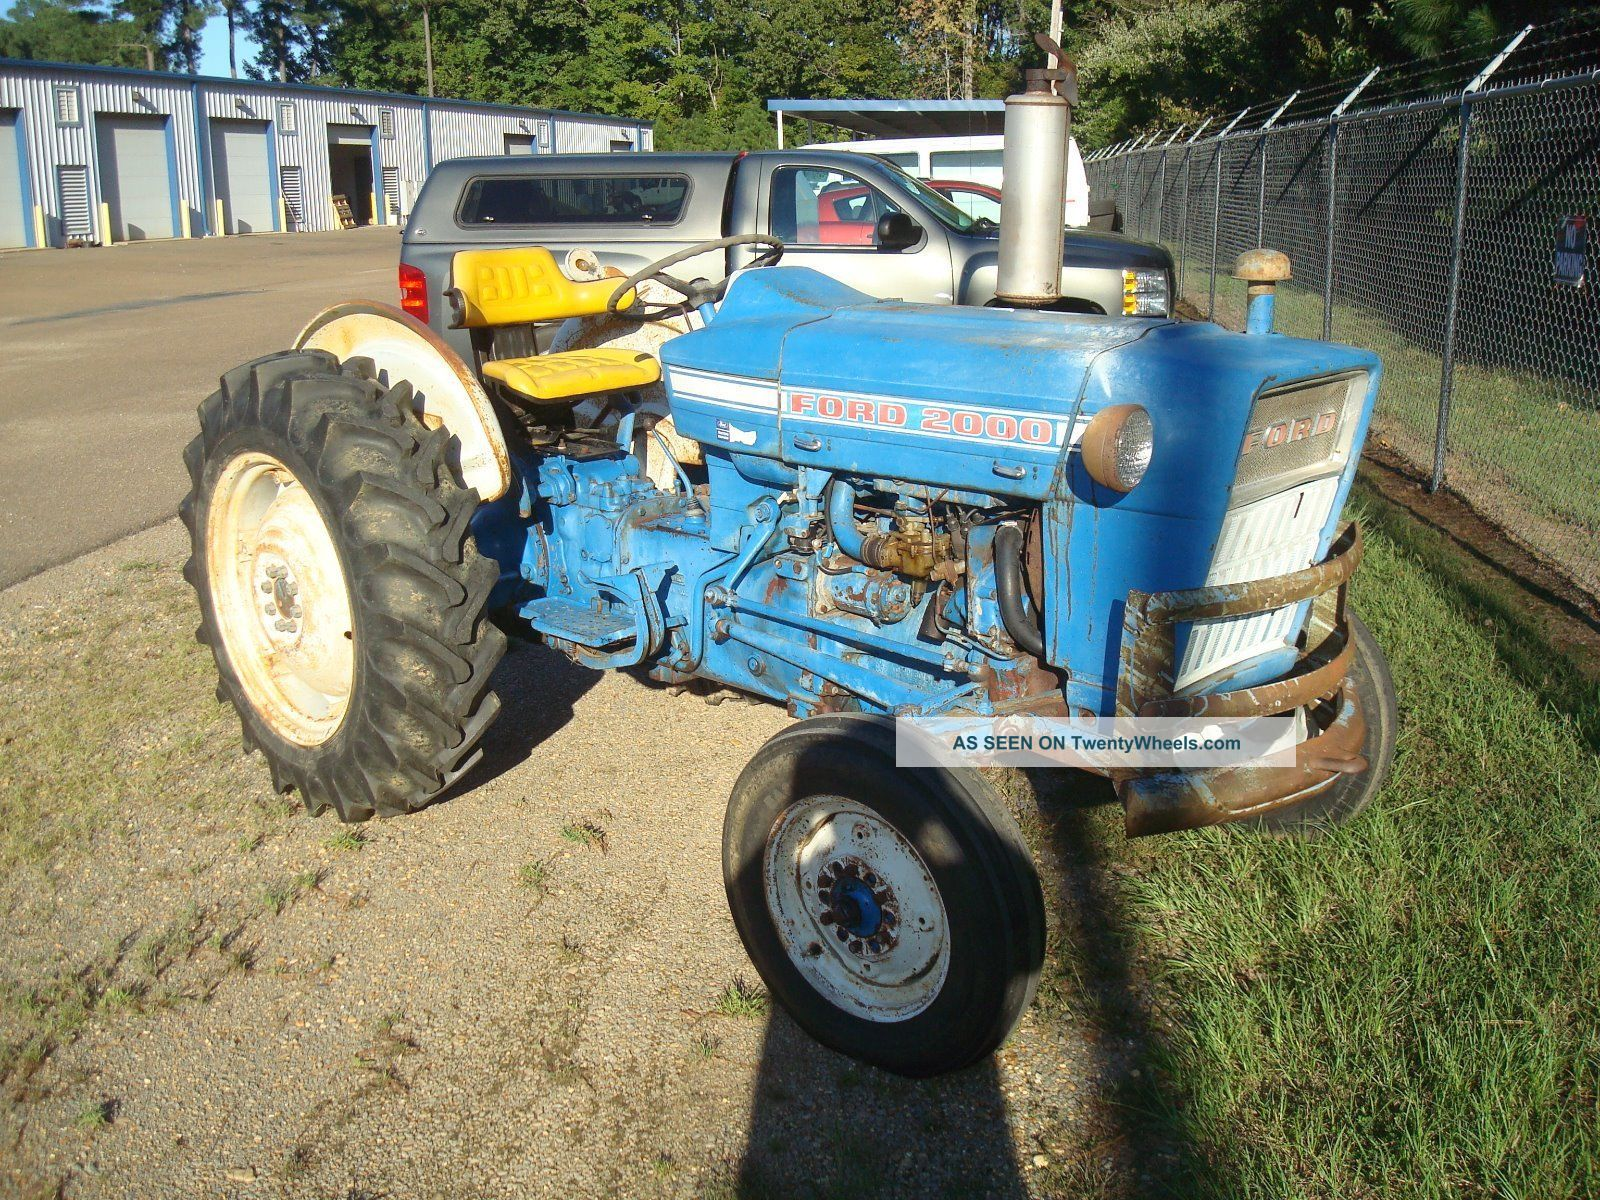 1970 ford 2000 gas tractor very. Black Bedroom Furniture Sets. Home Design Ideas